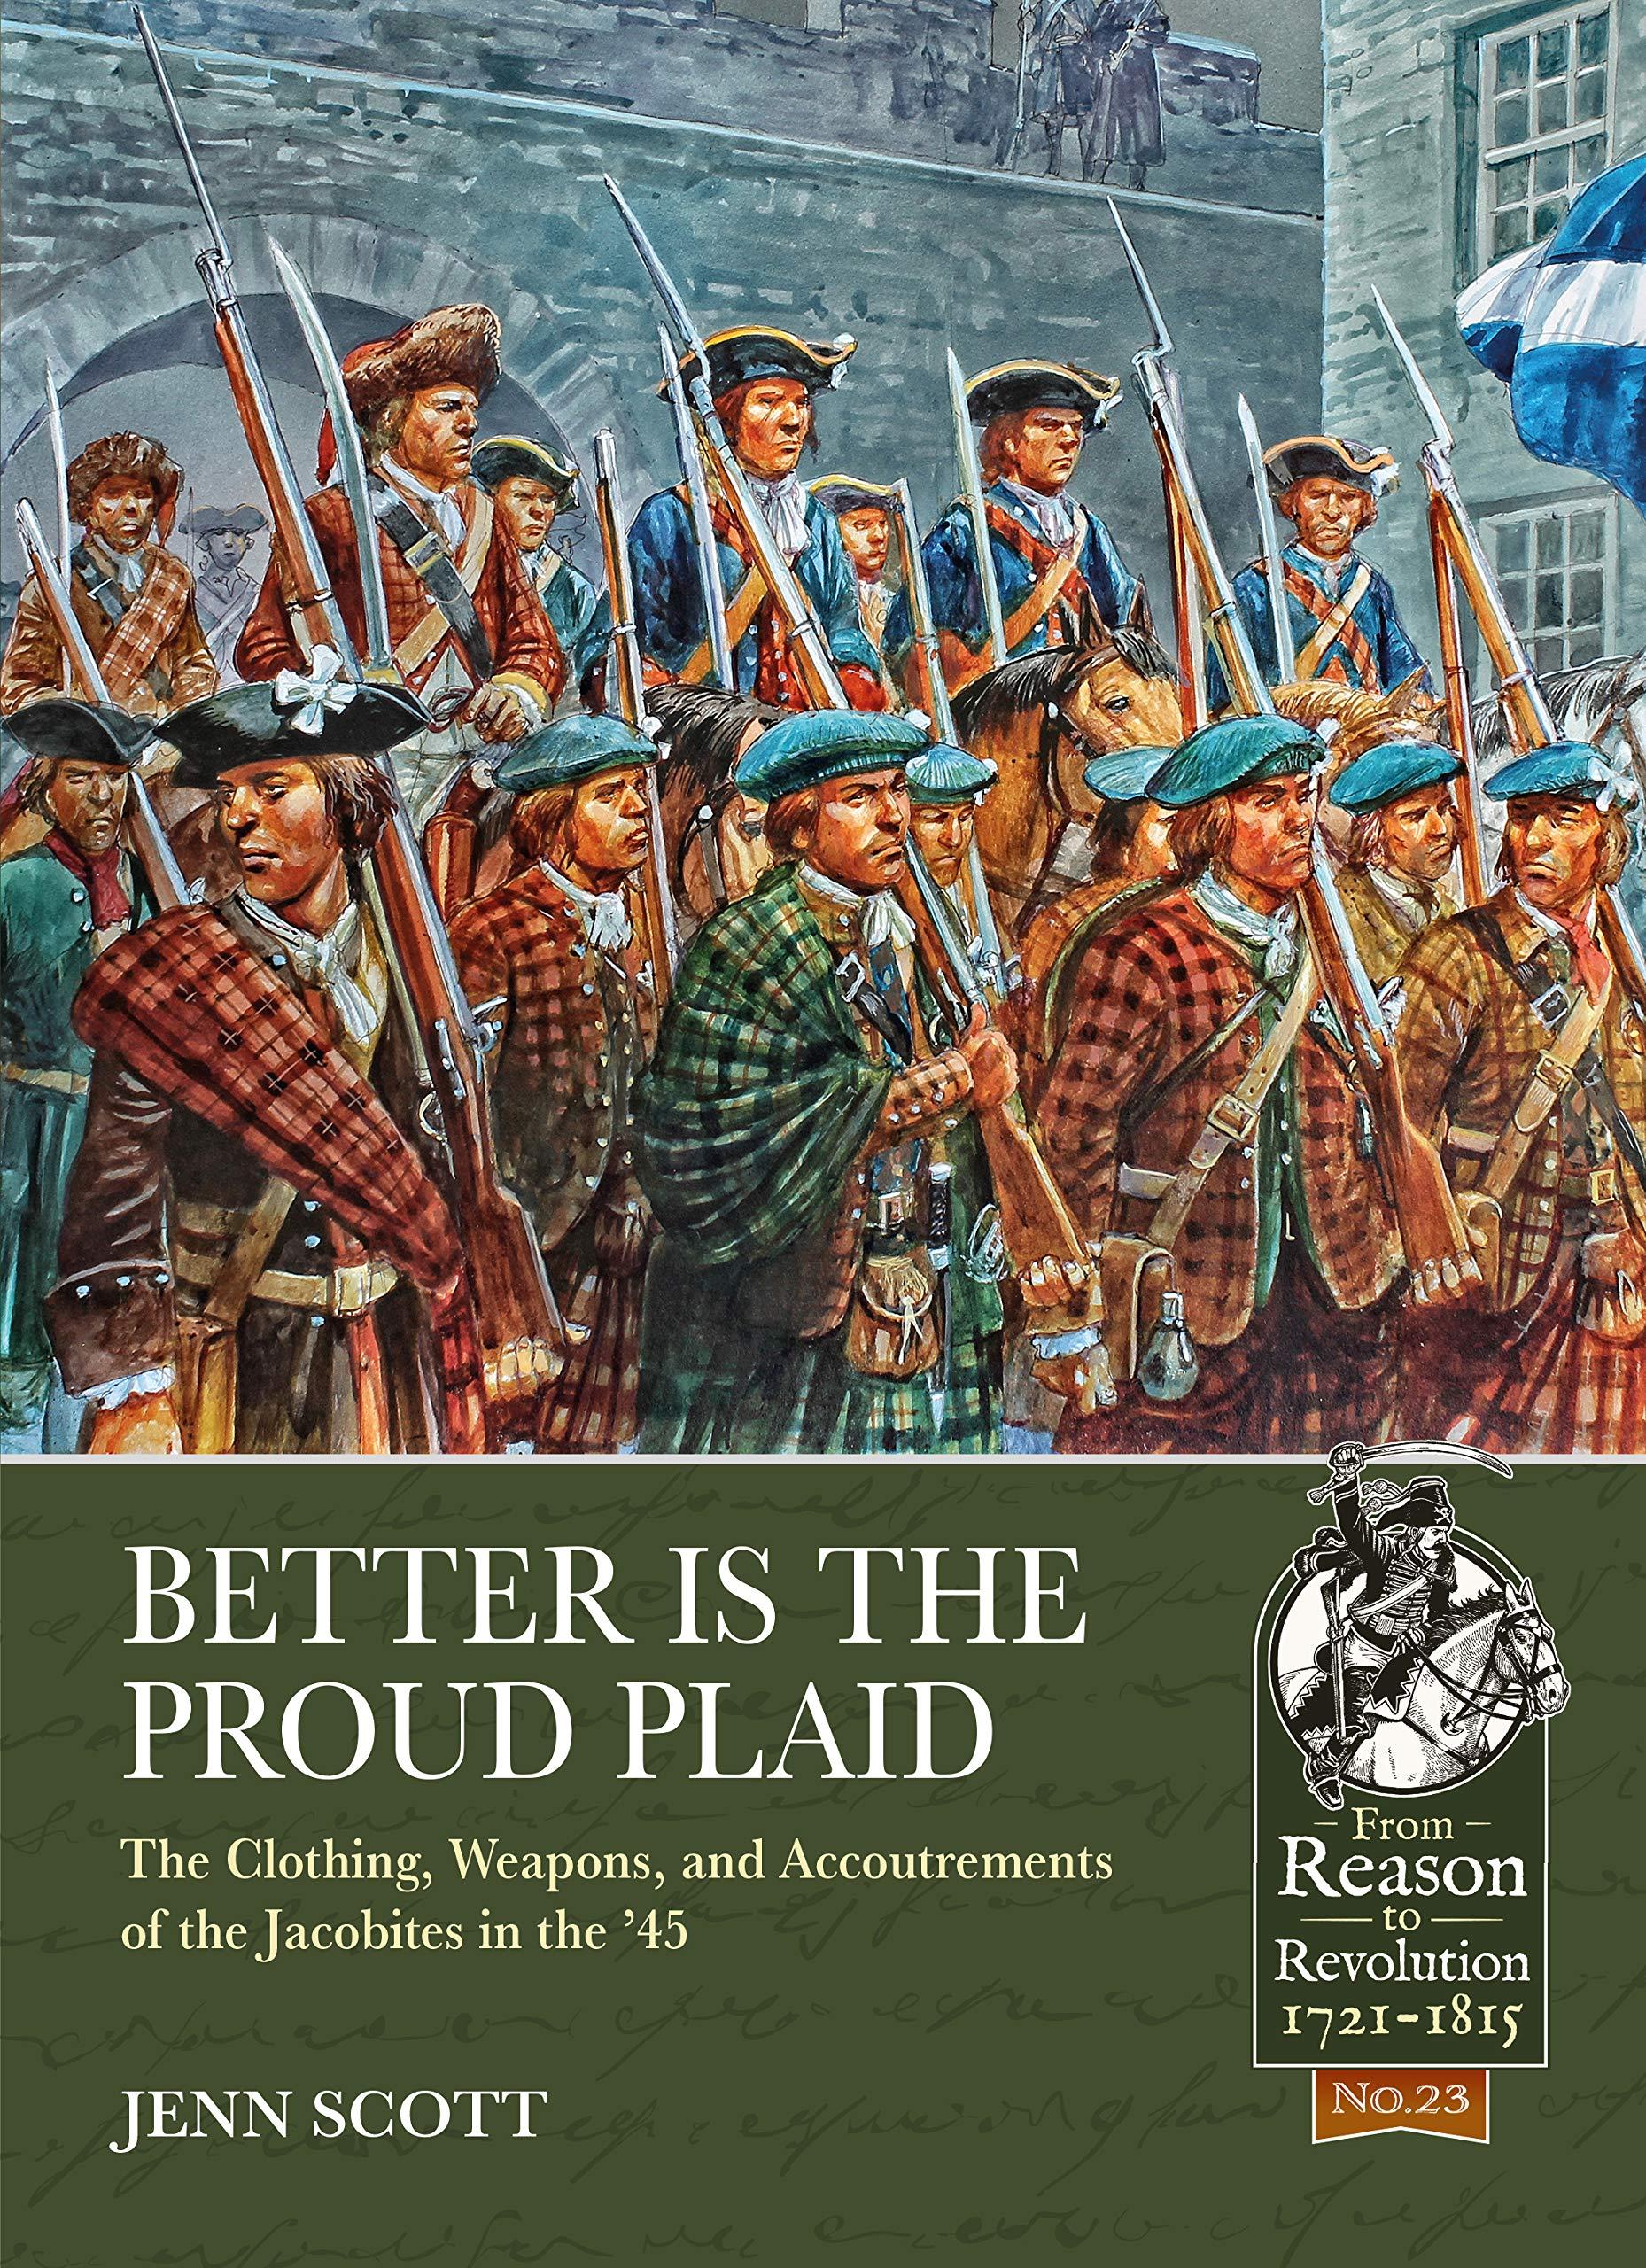 Download Better is the Proud Plaid: The Clothing, Weapons, and Accoutrements of the Jacobites in the '45 (From Reason To Revolution) pdf epub